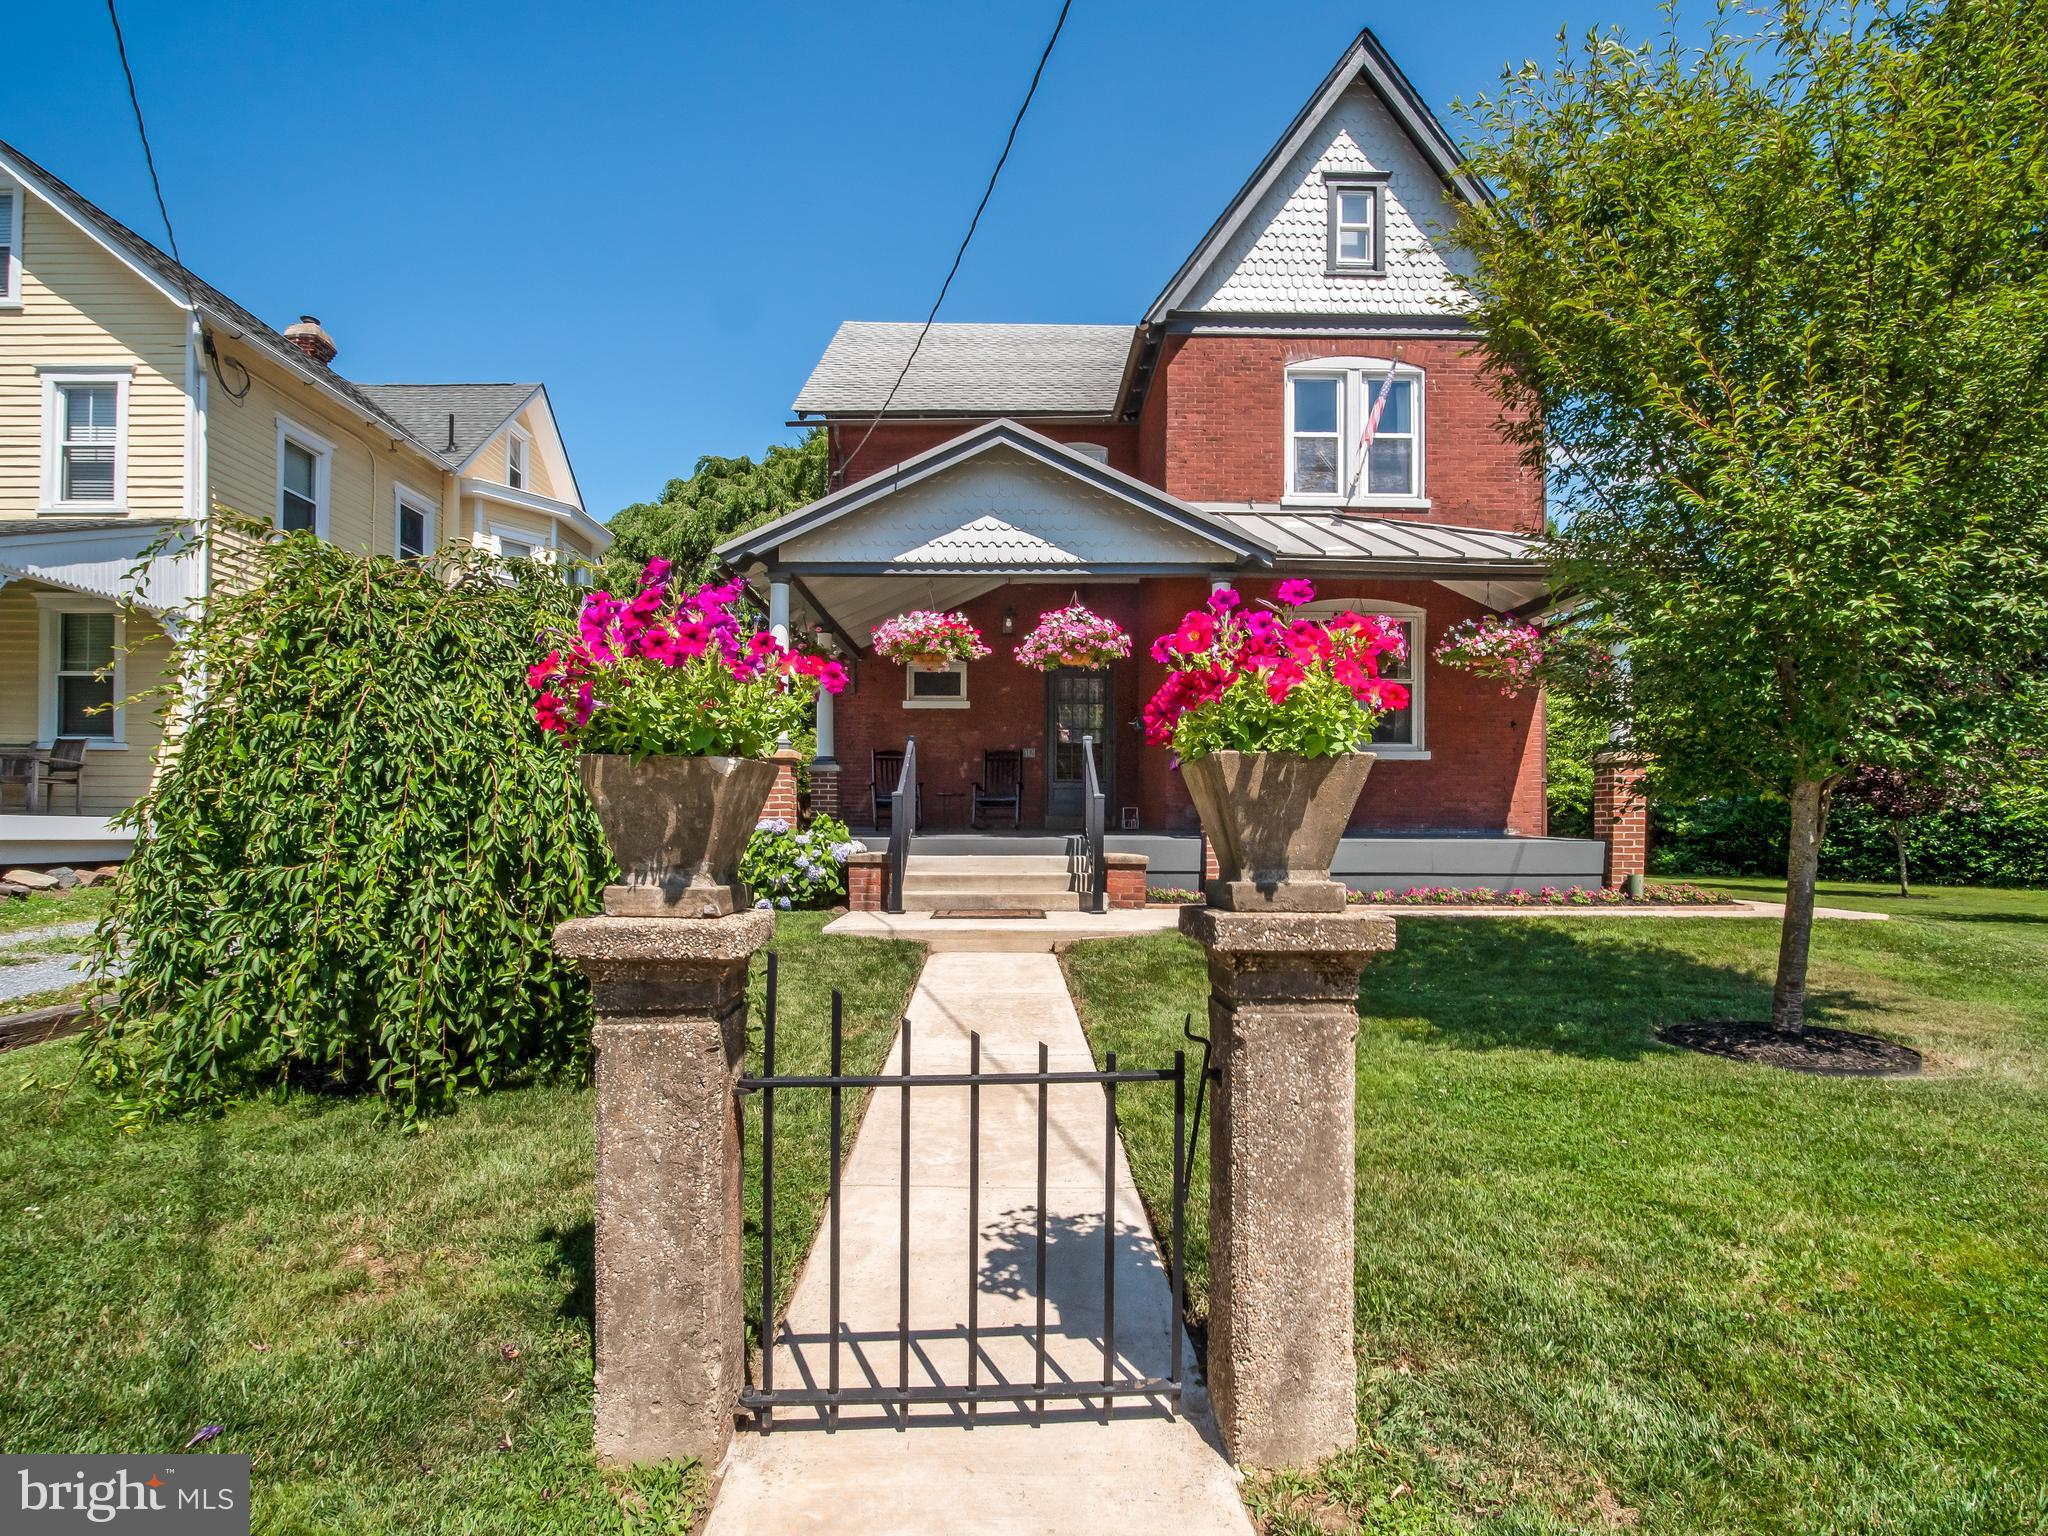 The brick Victorian home is one of the most sought after architectural styles that has lasted the te